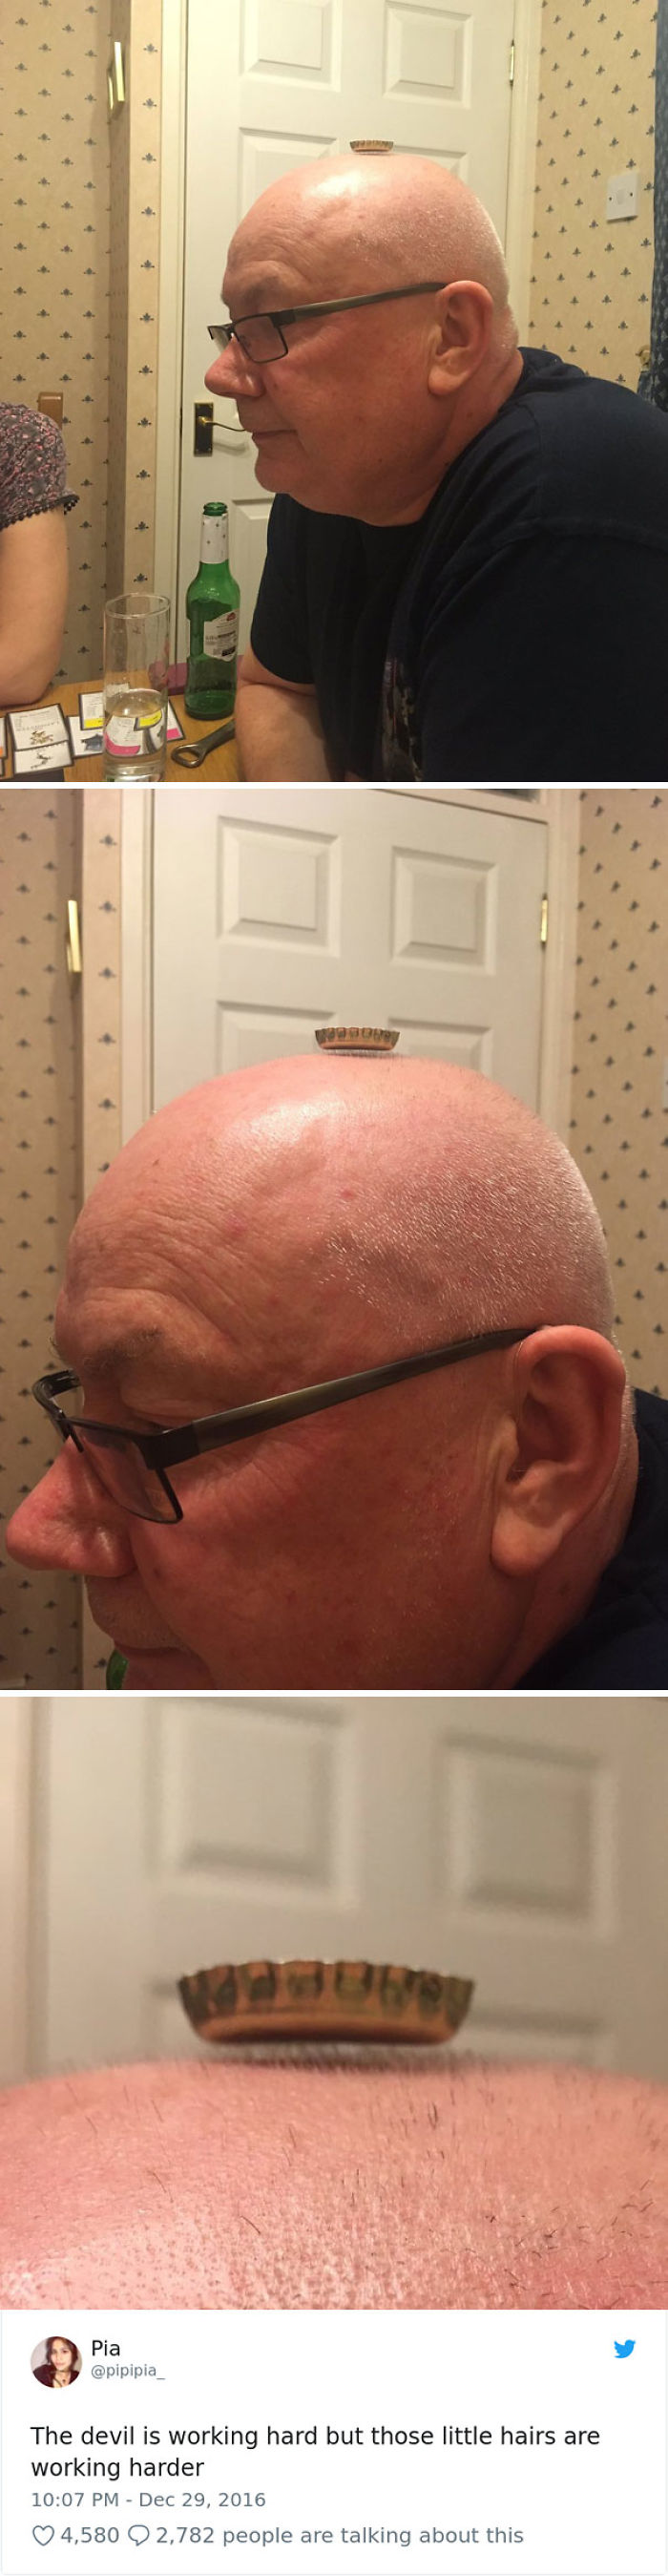 Dad Proving He Hasn't Lost All His Hair